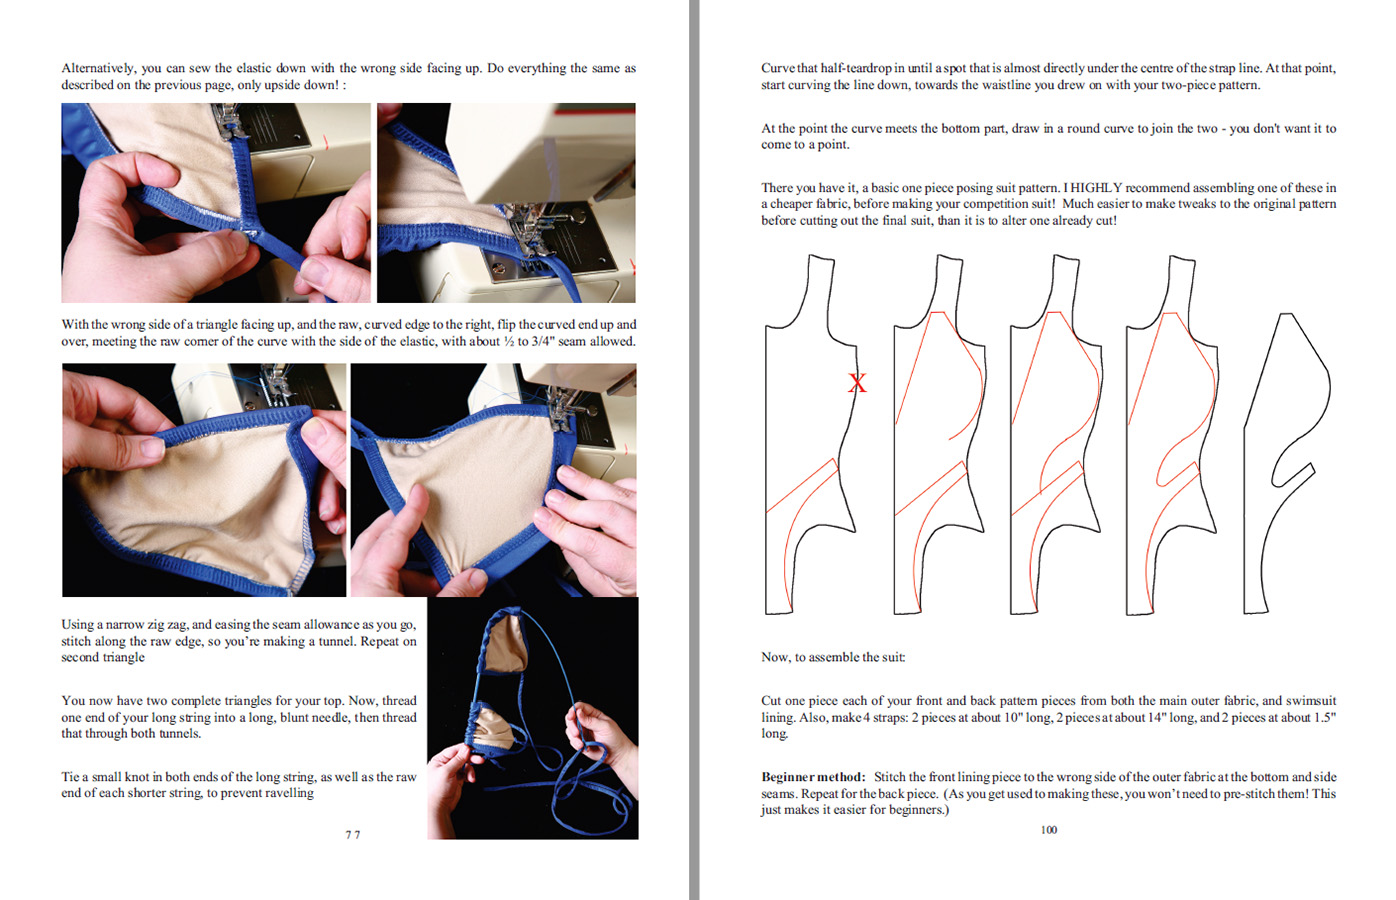 A scan of two sample instruction pages from Fitness & Bodybuilding.